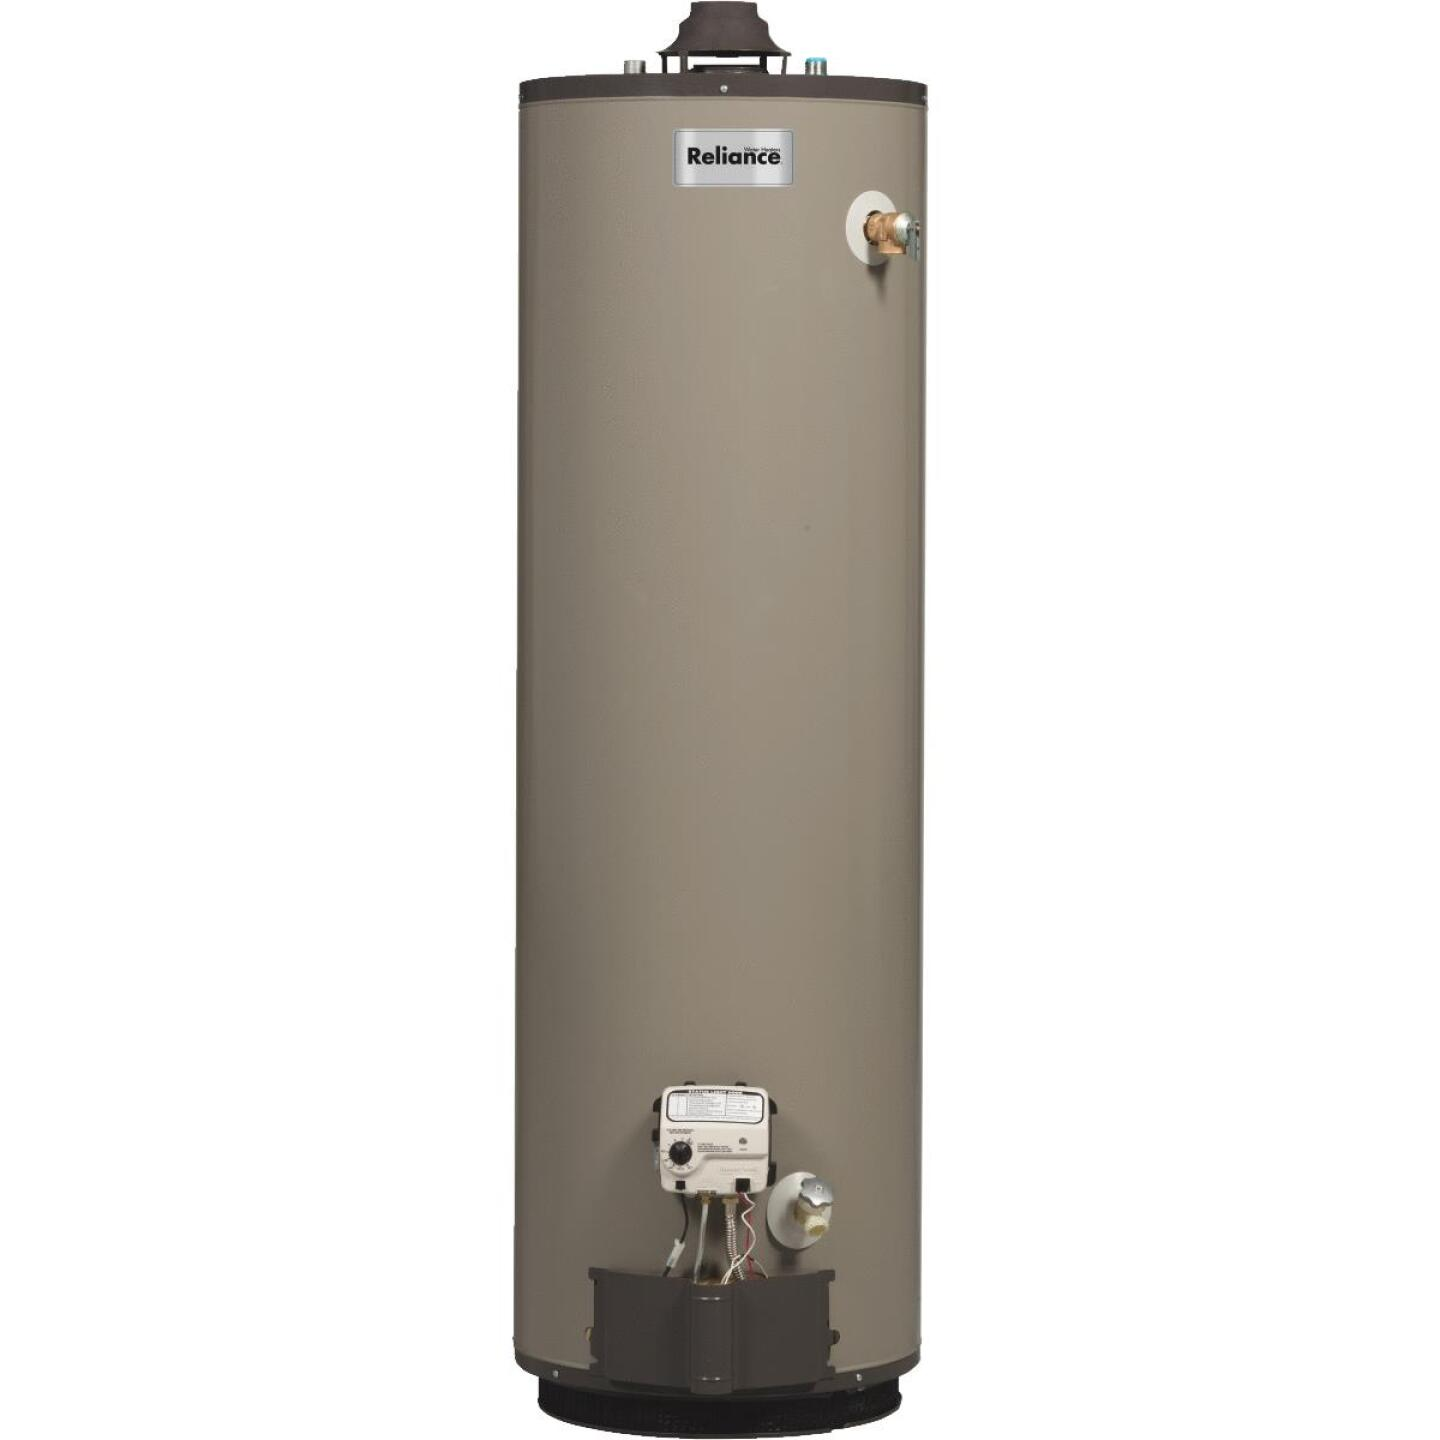 Reliance 50 Gal. Tall 9yr 40,000 BTU Self-Cleaning Natural Gas Water Heater Image 1